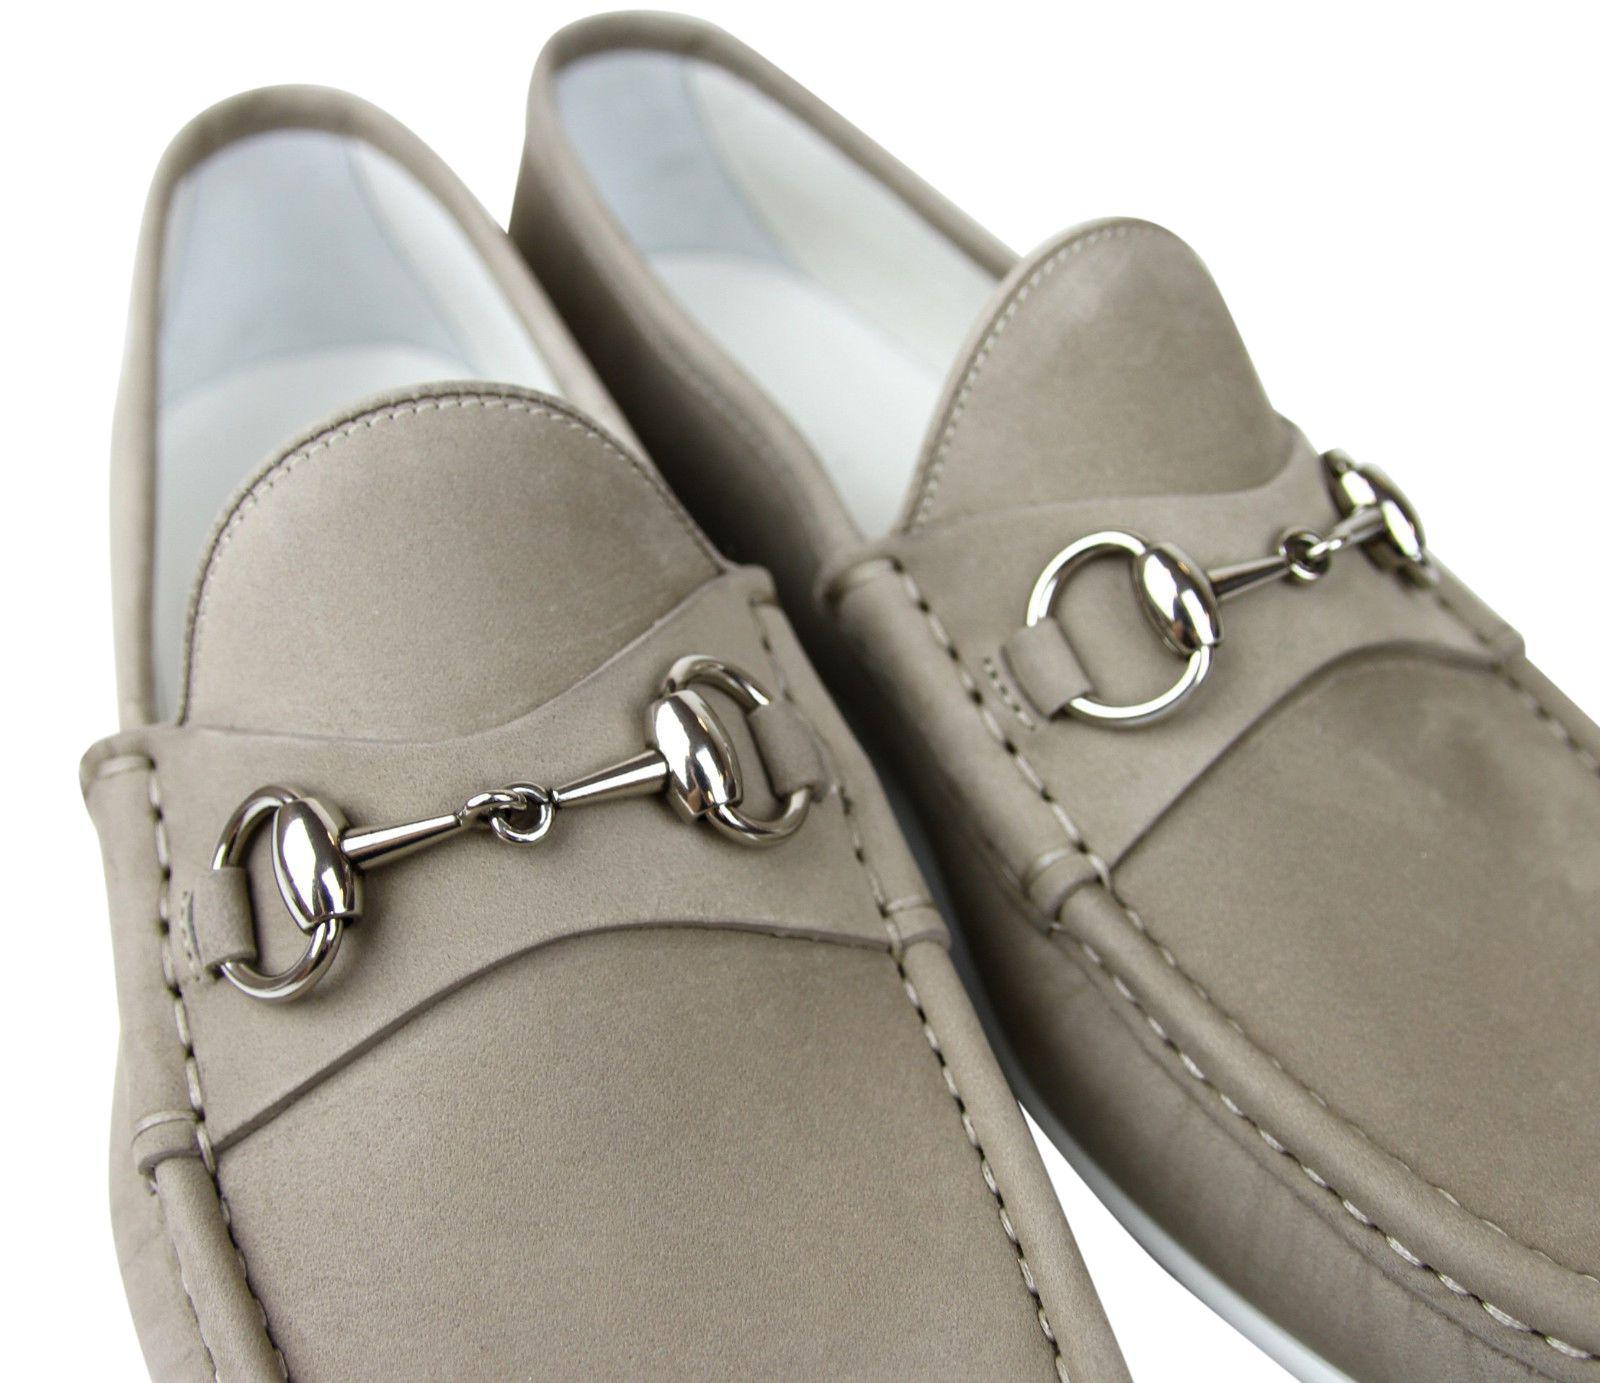 4d2bd933acf Gucci - Natural Moccasin Suede Horsebit Loafer 337060 Bho00 for Men - Lyst.  View fullscreen